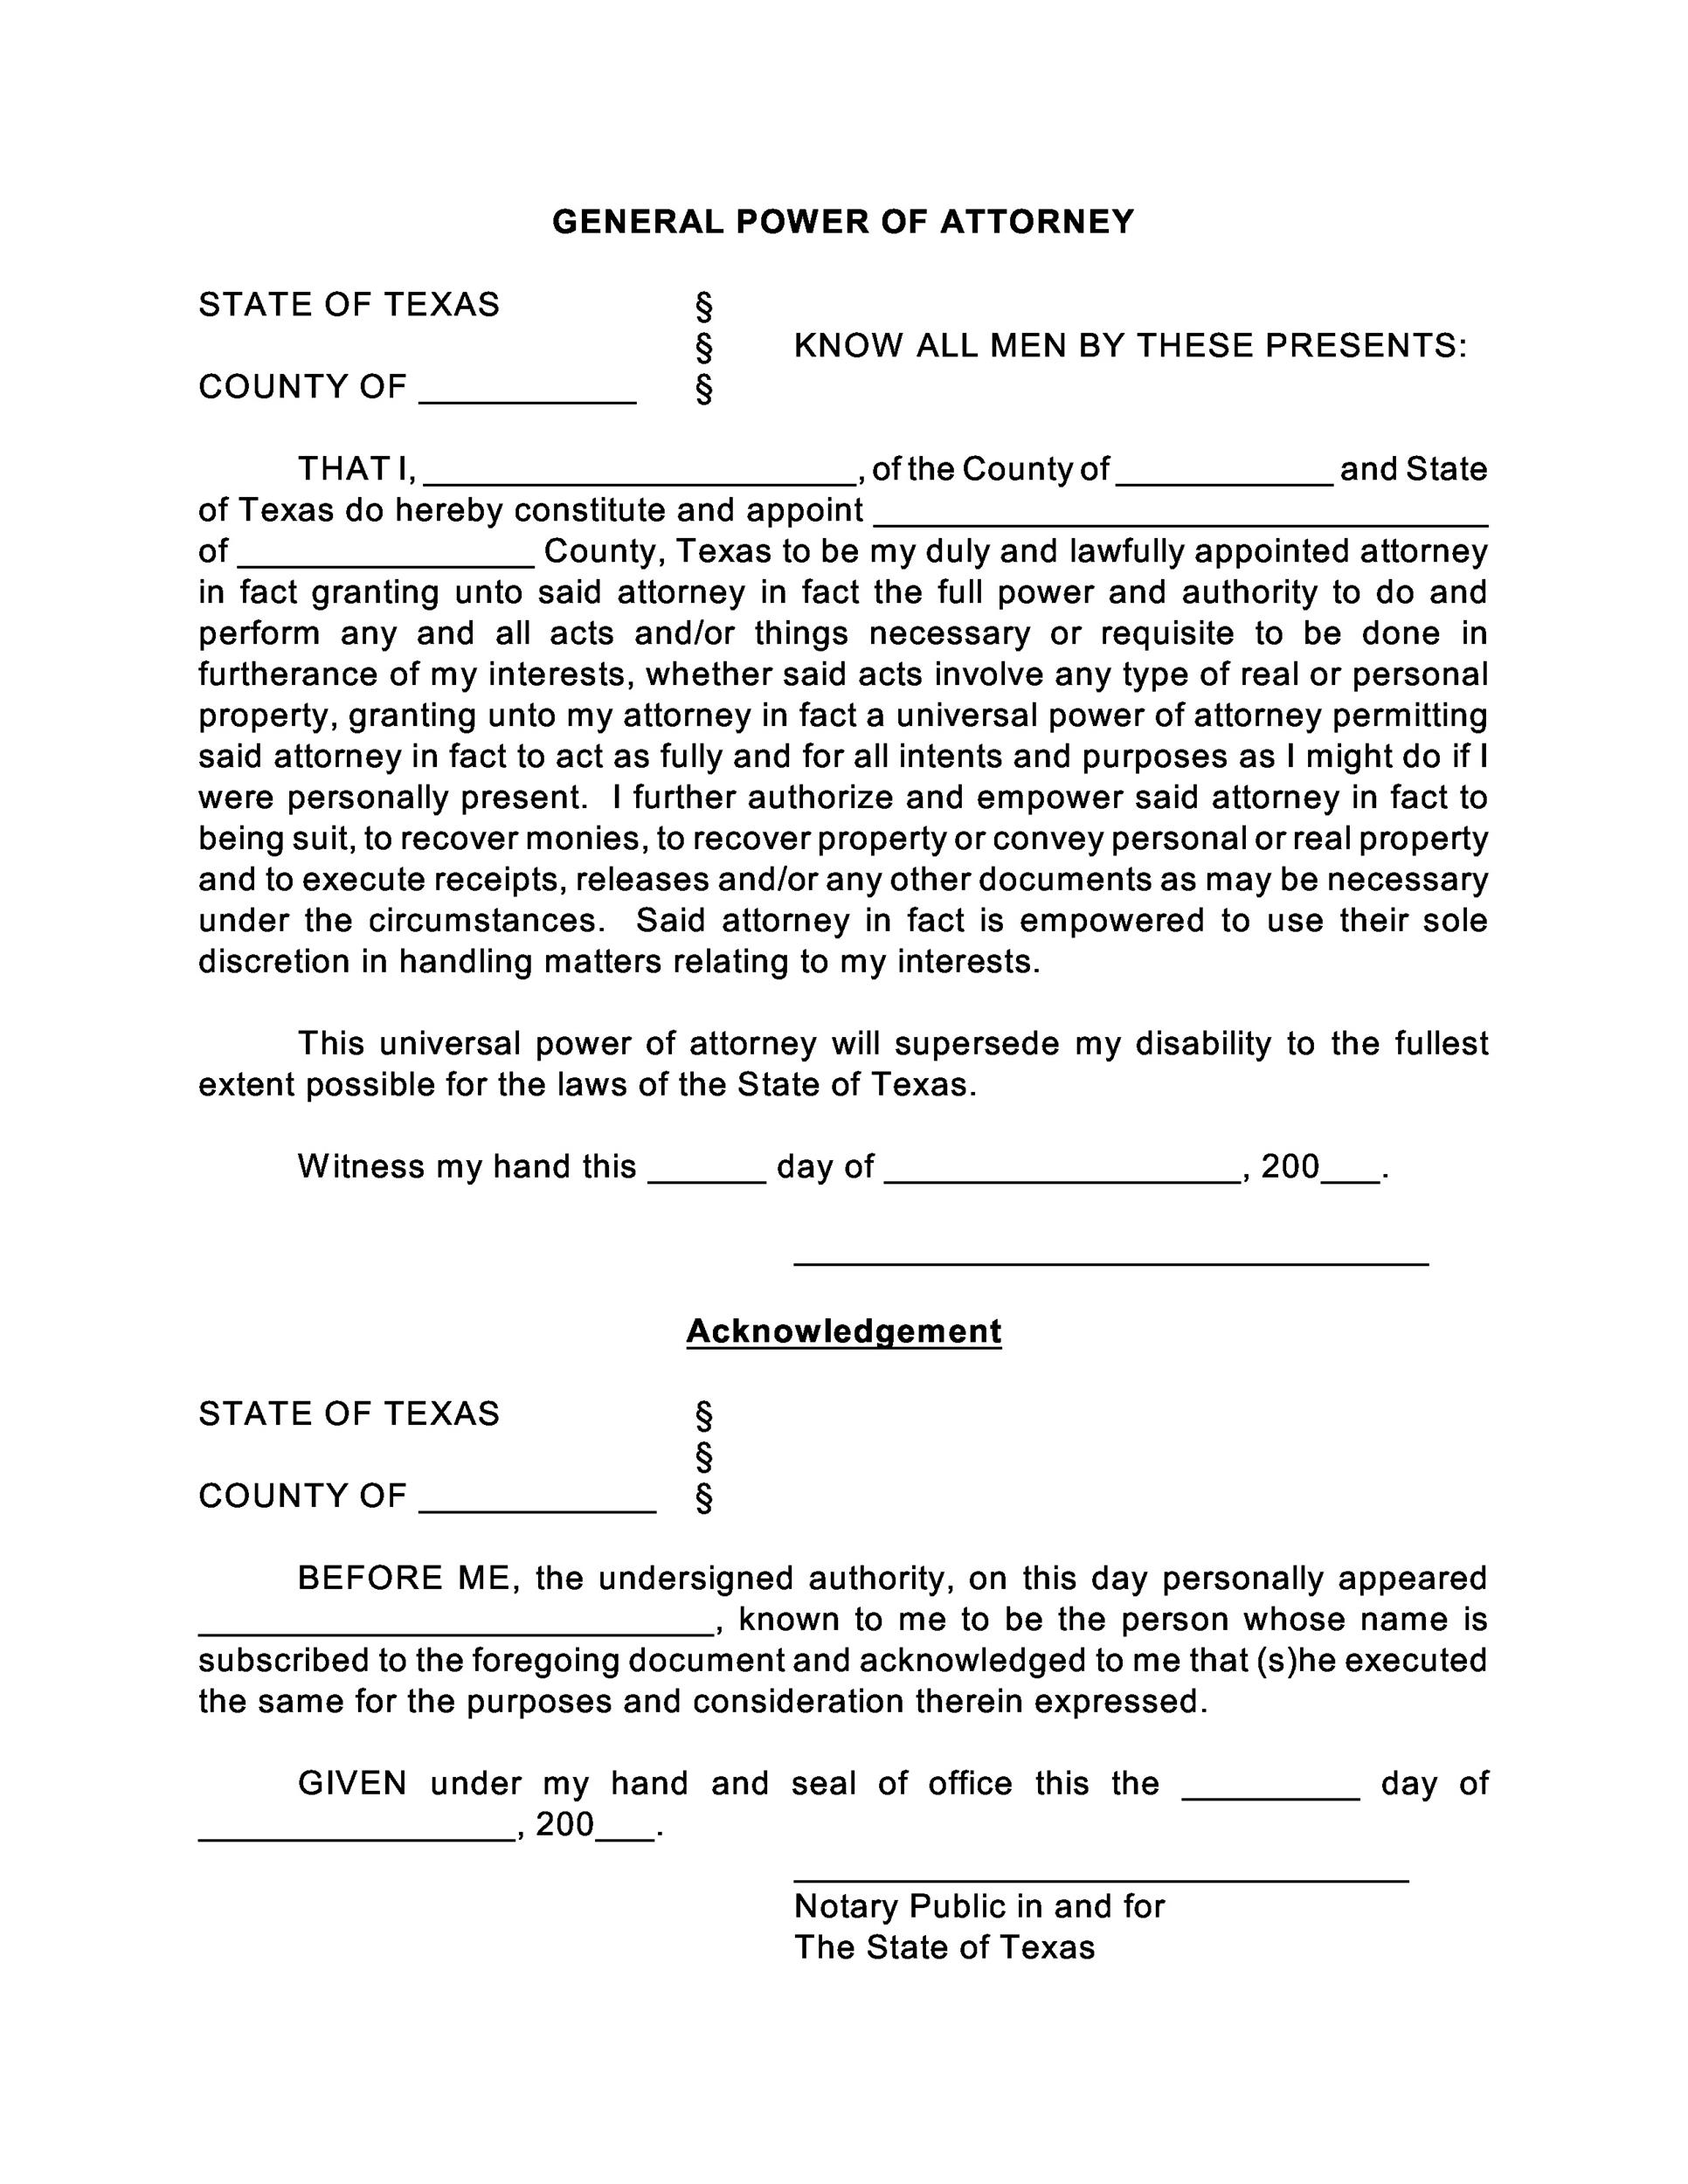 50 free power of attorney forms templates durable medicalgeneral printable power of attorney 16 falaconquin